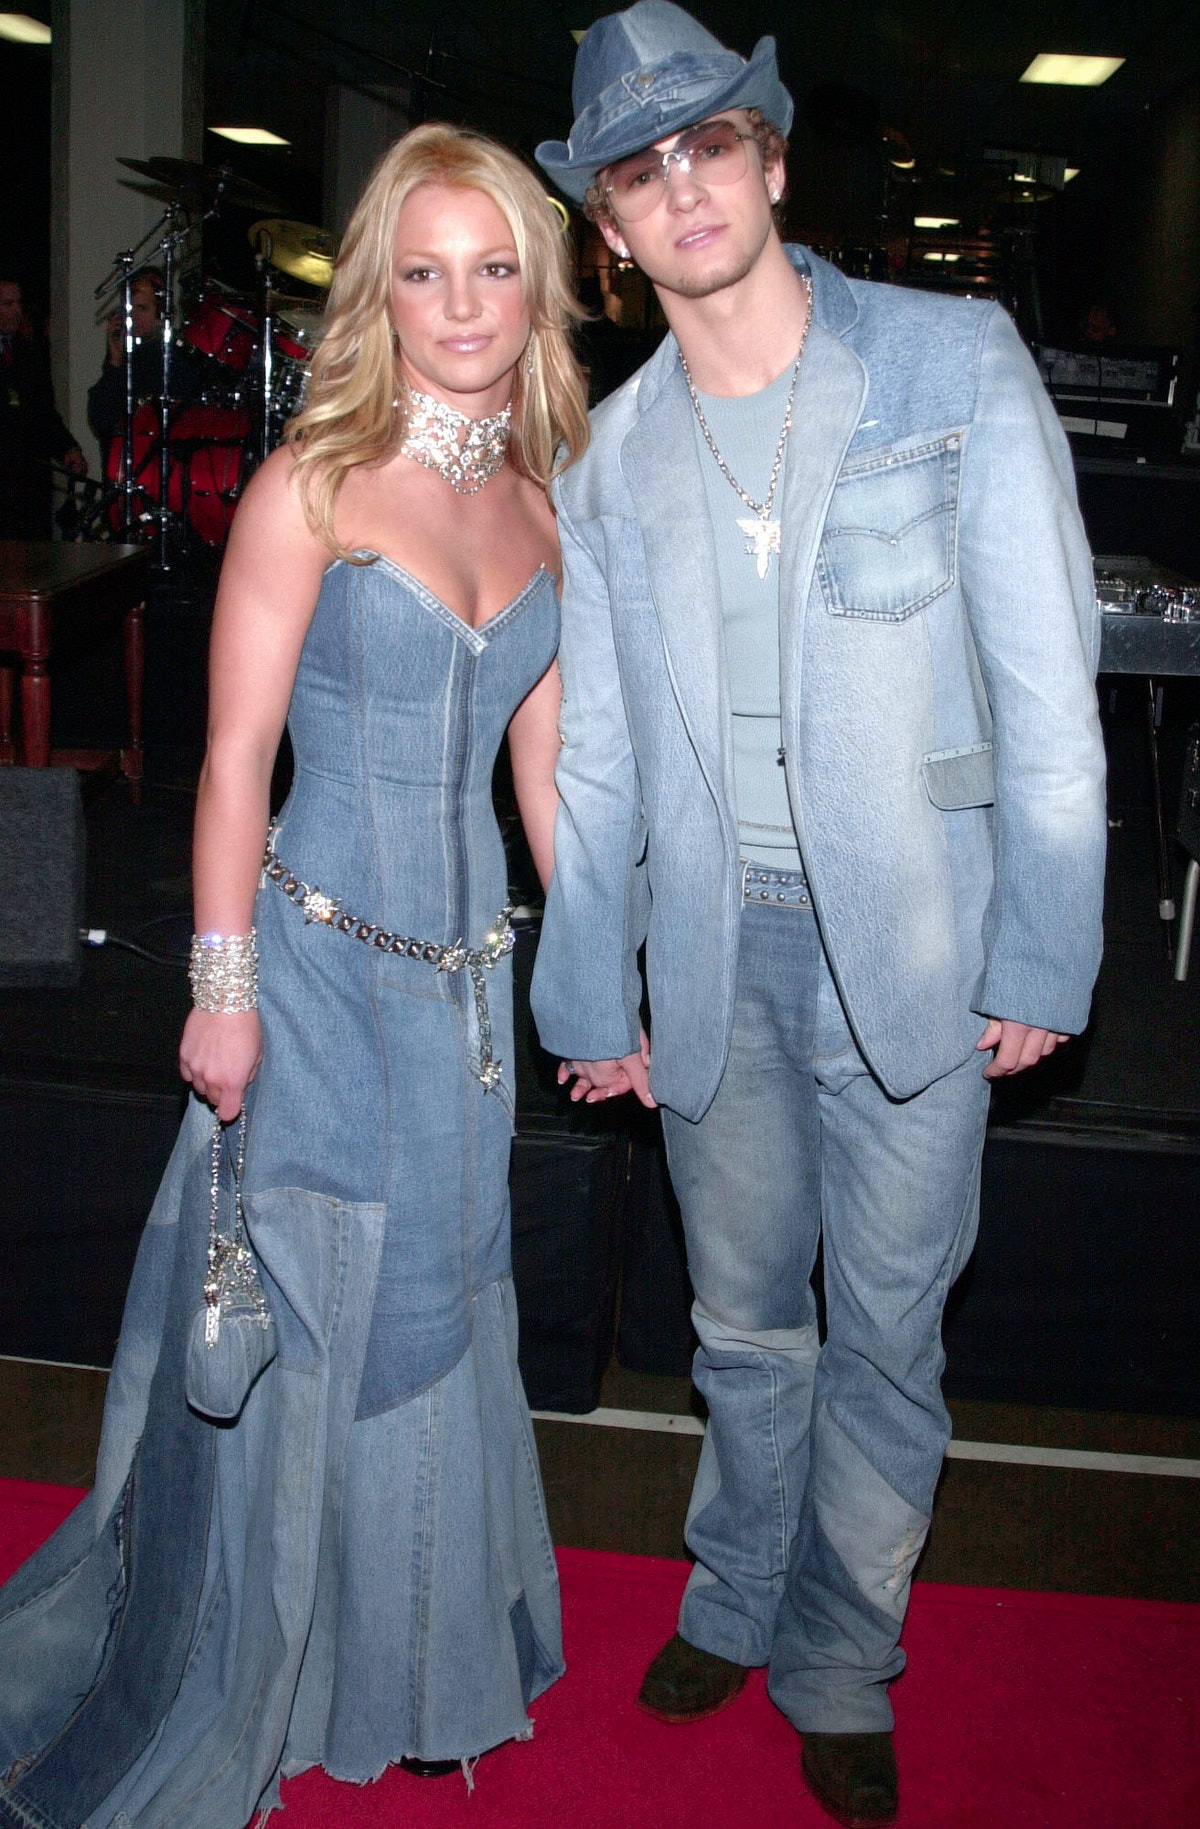 Justin Timberlake and Britney Spears attend the AMAs.